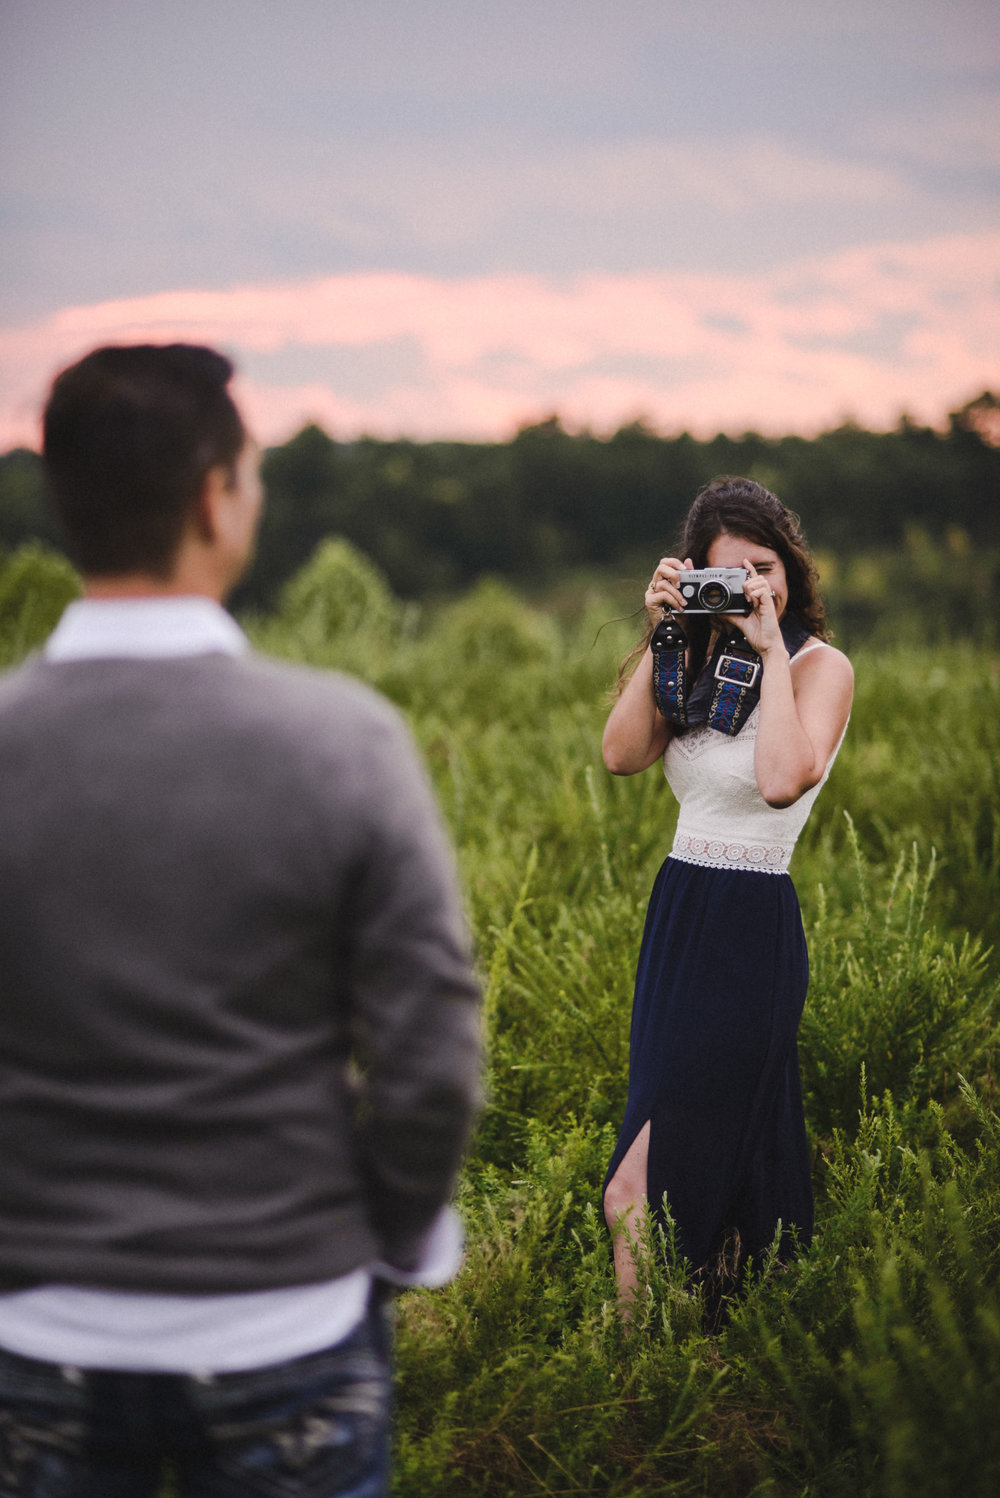 Anderson, Missouri engagement and wedding photography